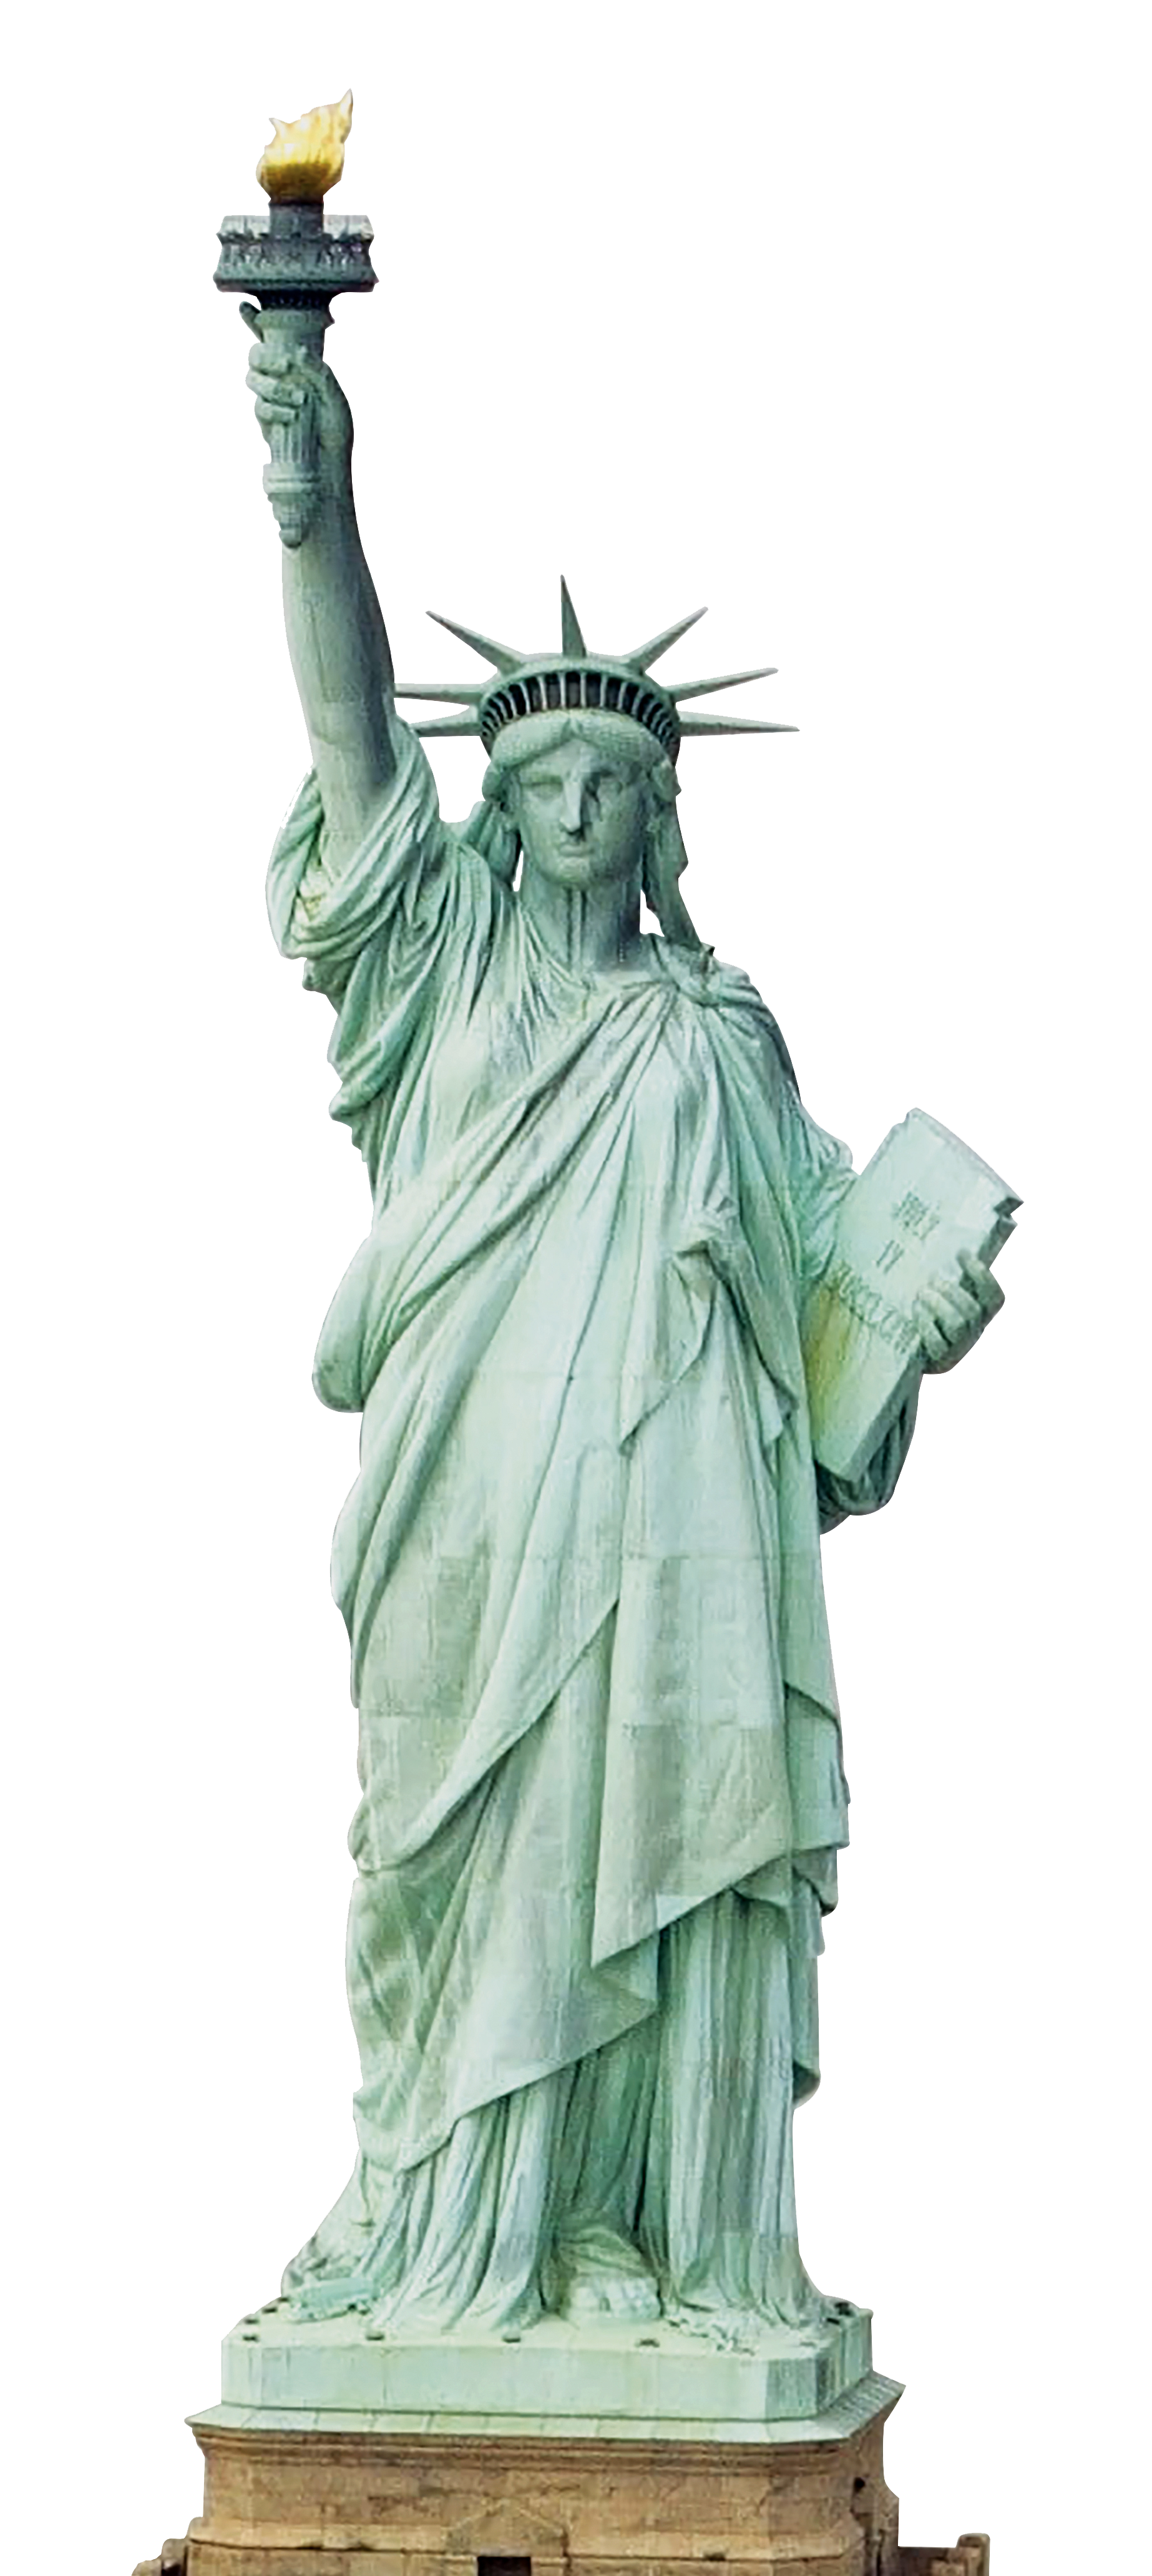 Png statue clear background. Of liberty transparent mart